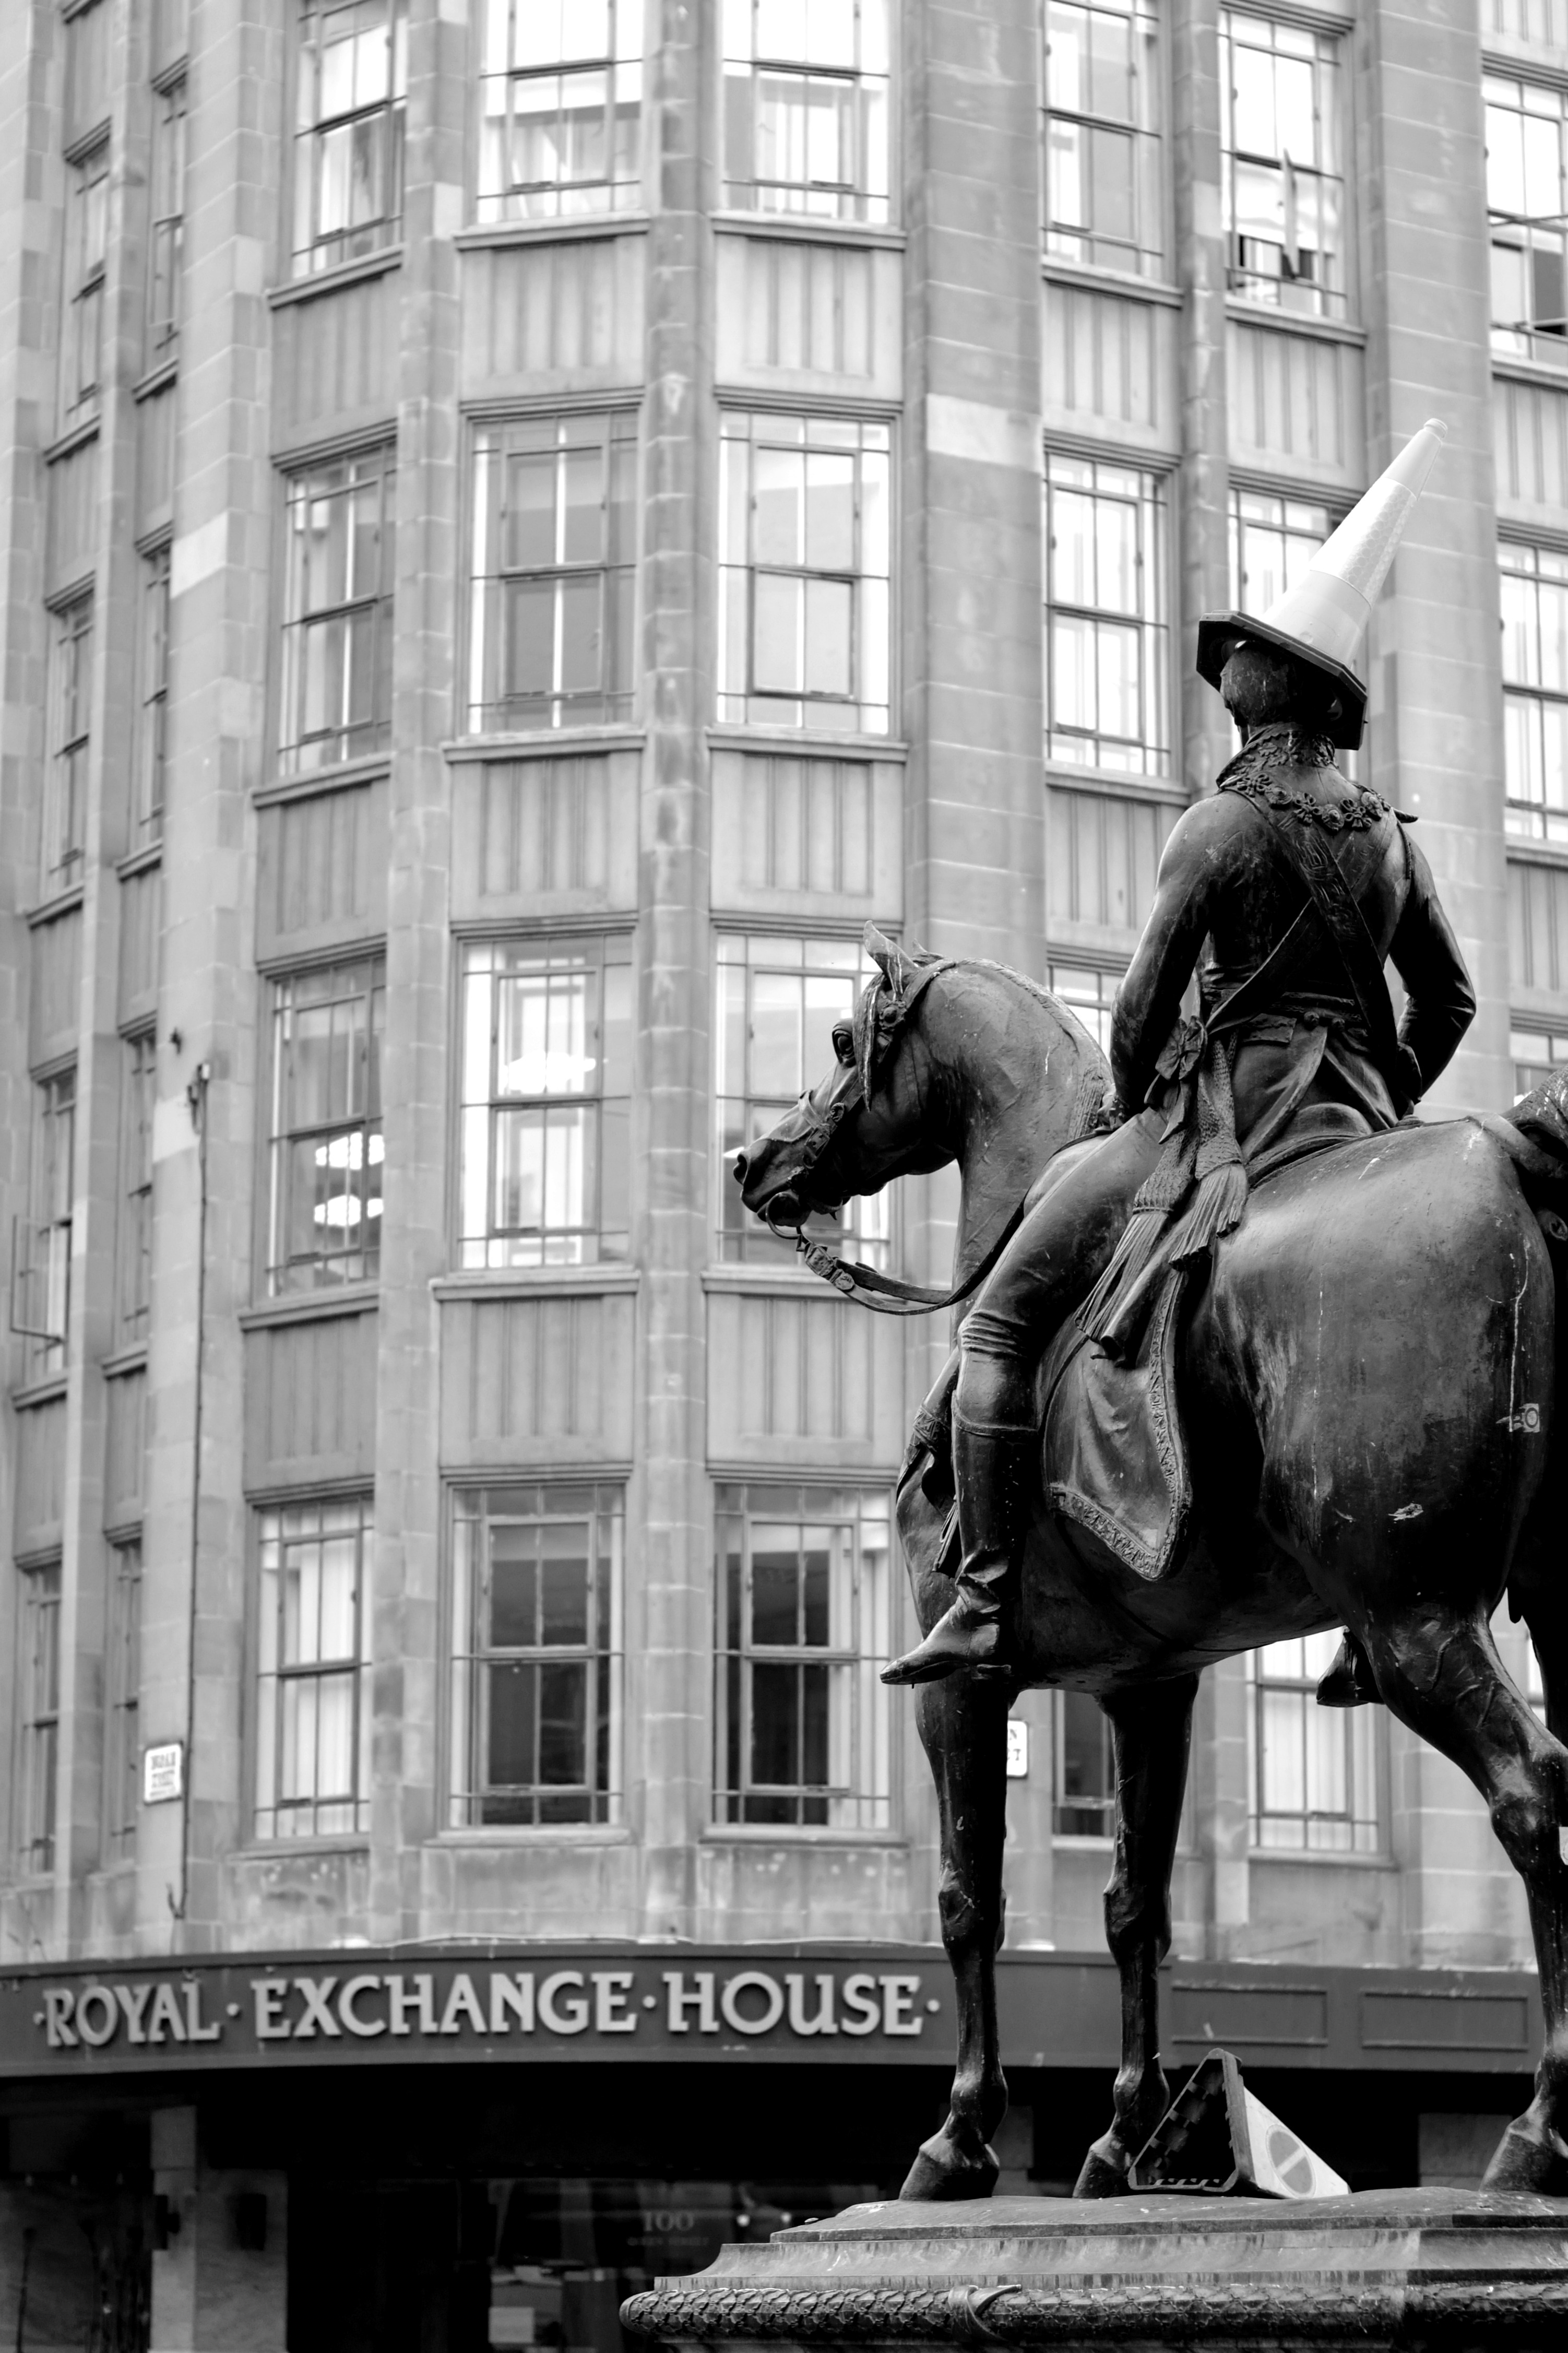 Duke of Wellington statue in Royal Exchange Square, Glasgow.